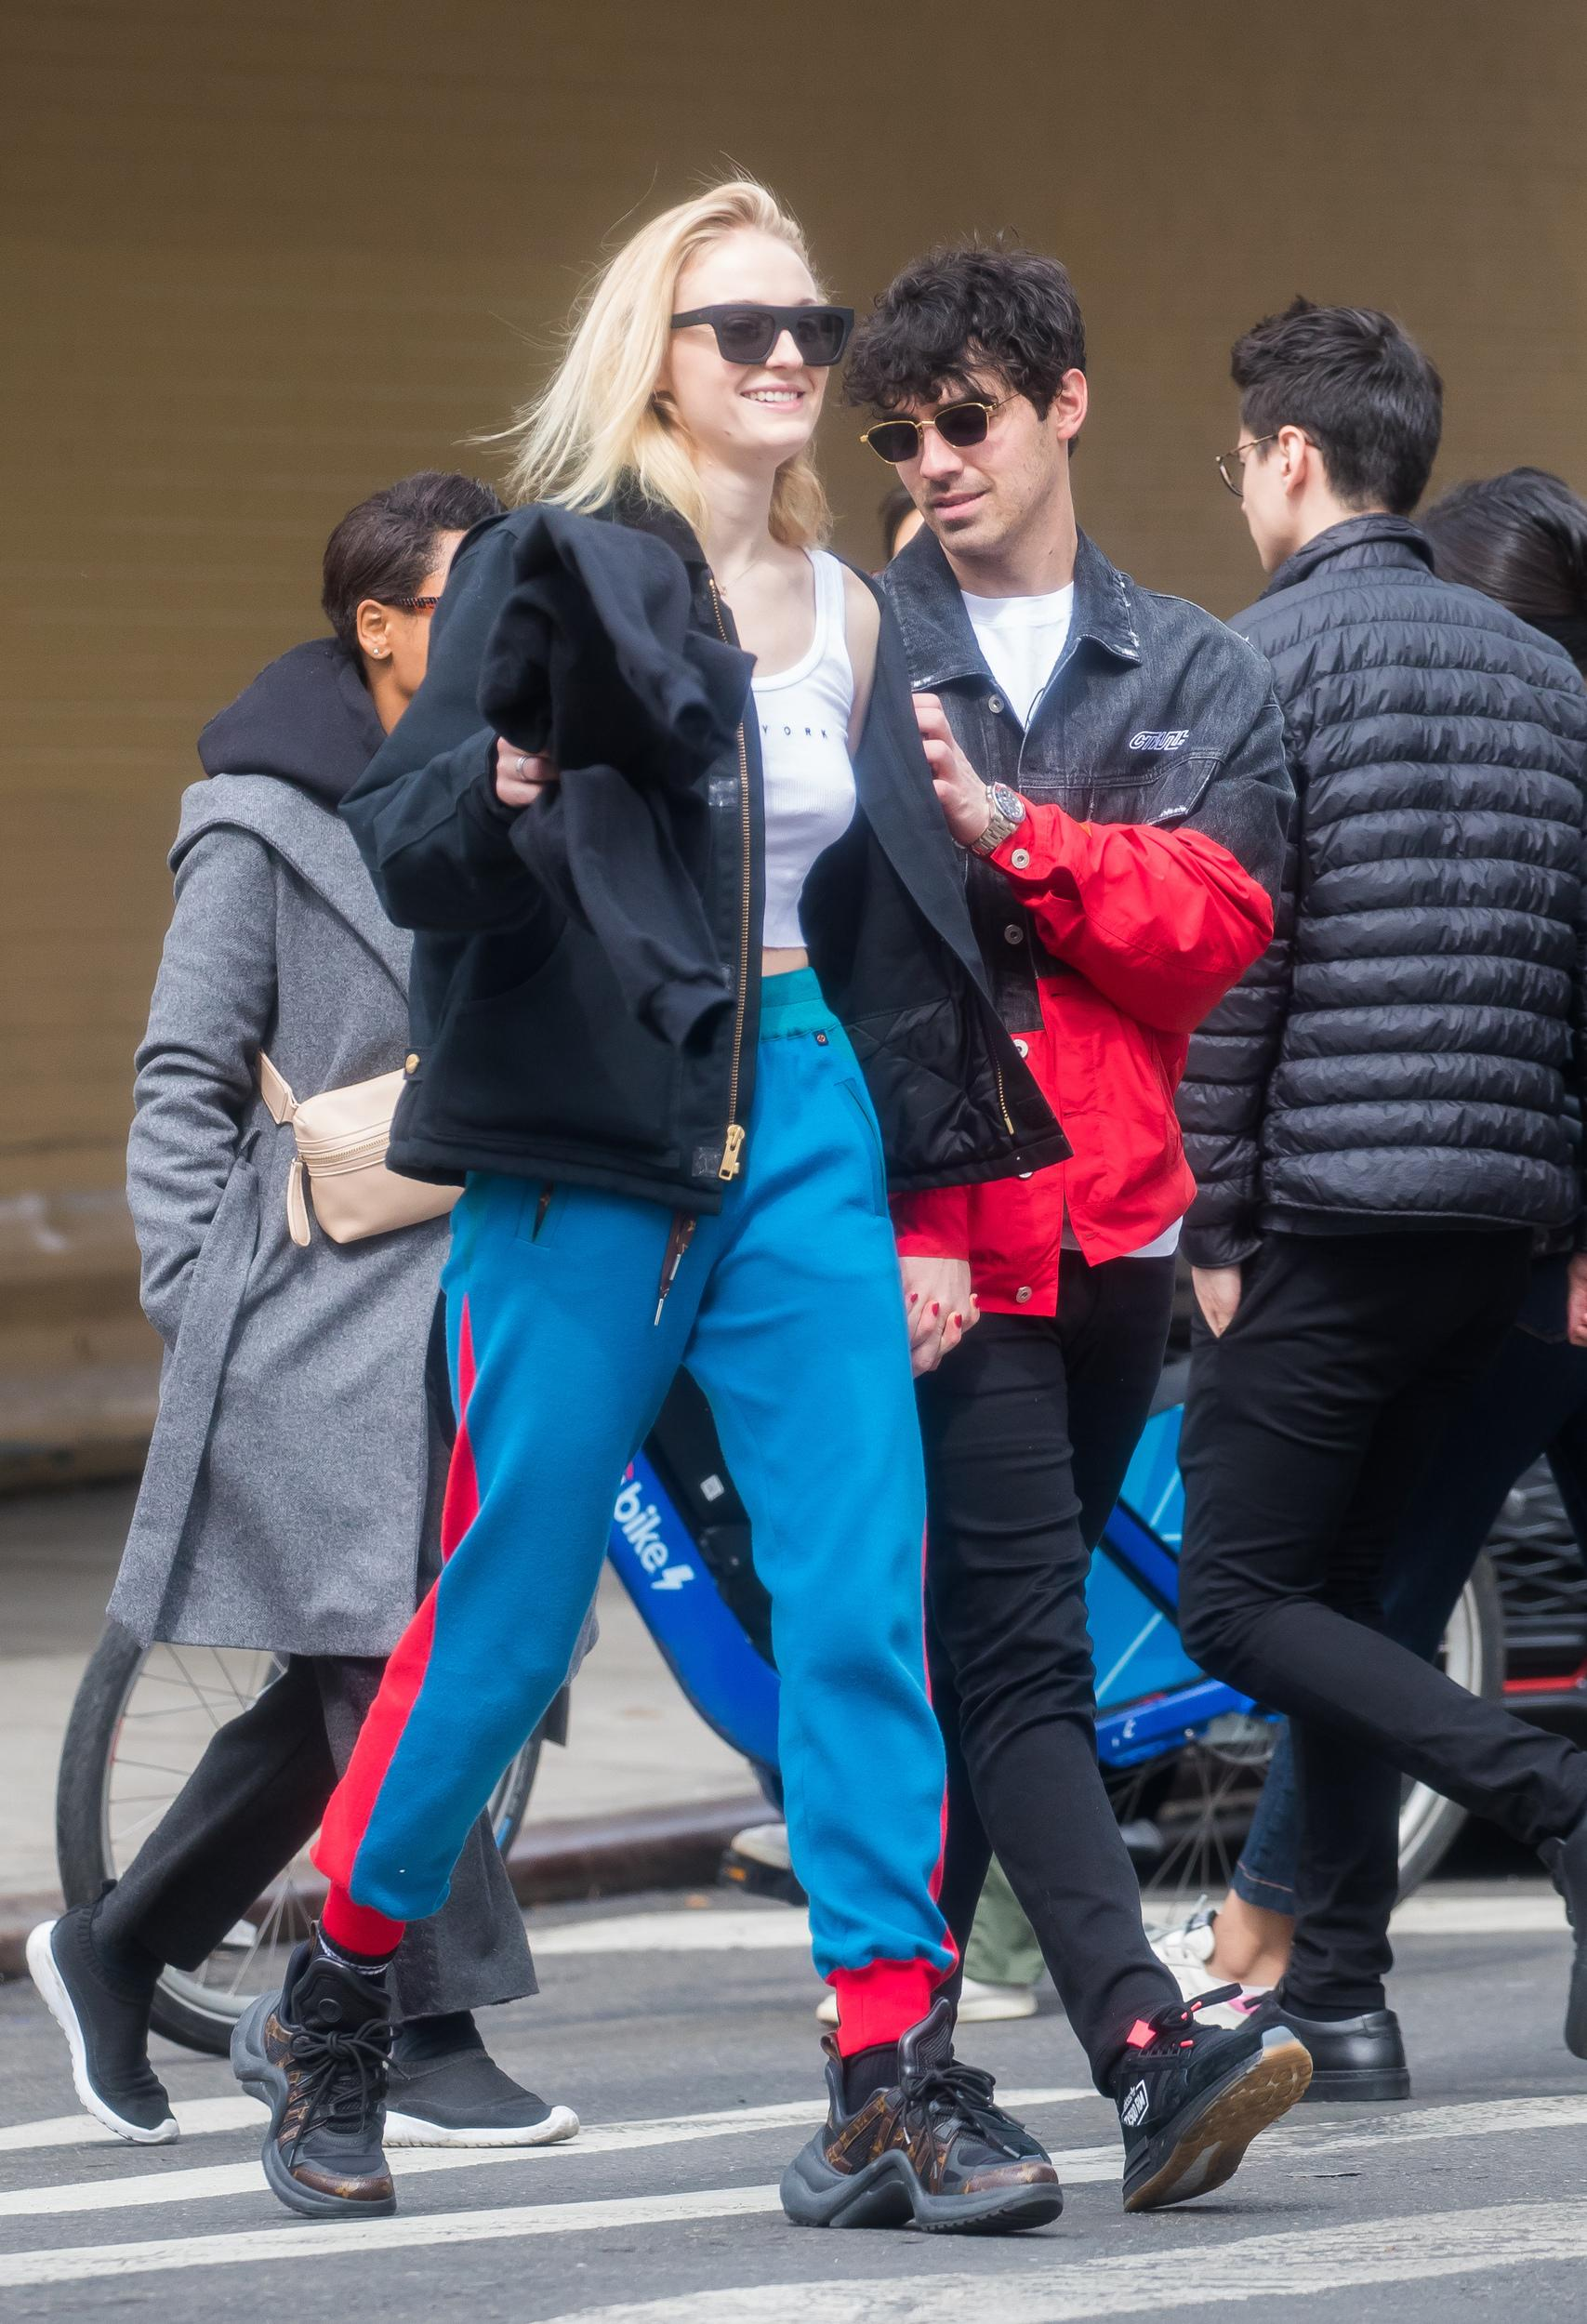 NEW YORK, NEW YORK - MARCH 15: Sophie Turner and Joe Jonas are seen on March 15, 2019 in New York City. (Photo by Say Cheese!/GC Images)